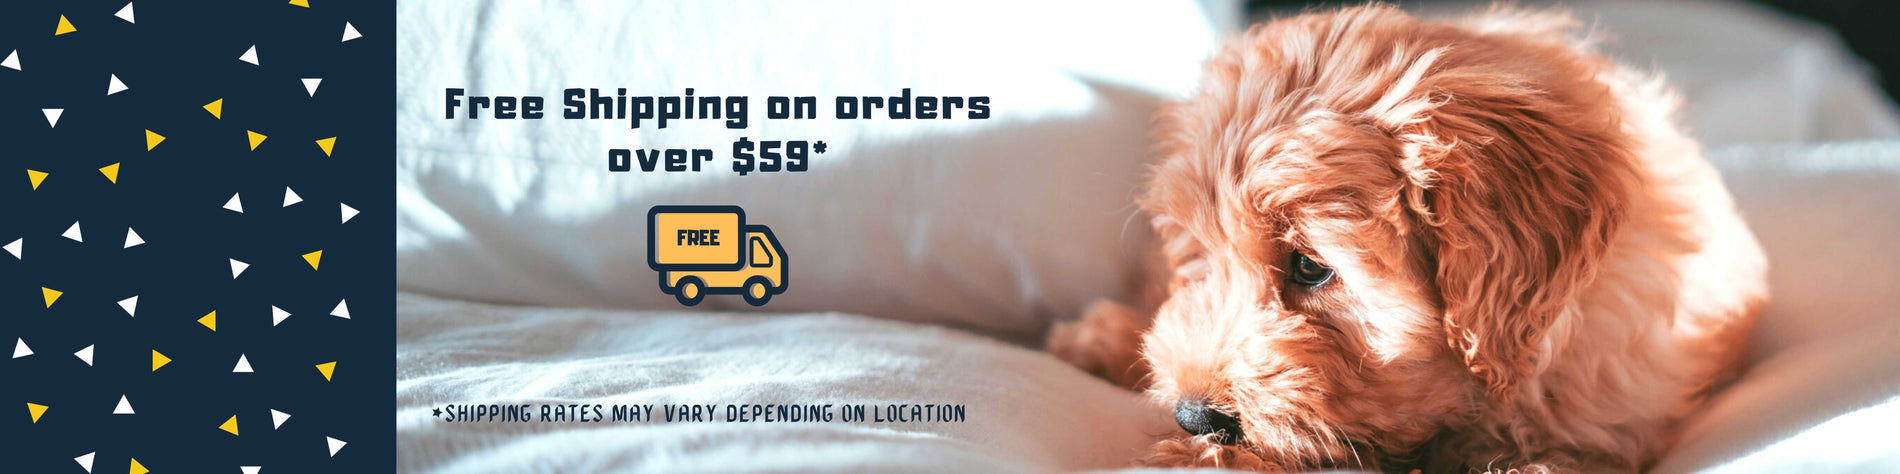 Online Pet Store Toronto Ontario | Armor The Pooch | Free Shipping